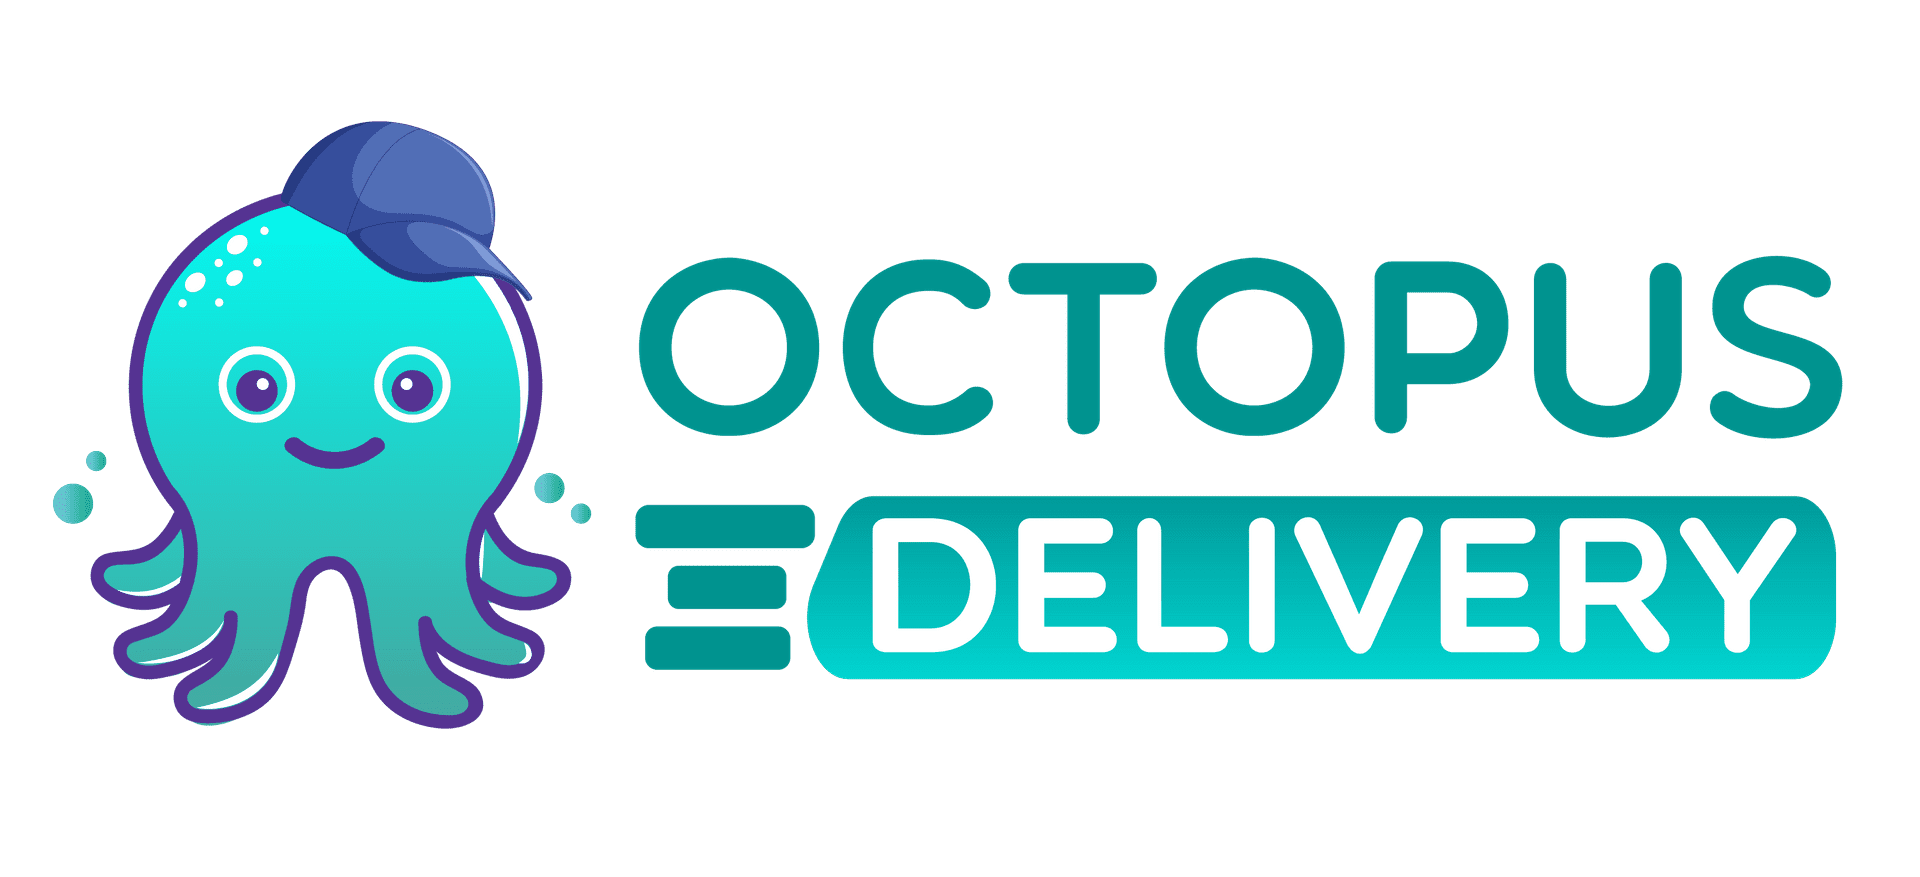 Octopus Delivery logo